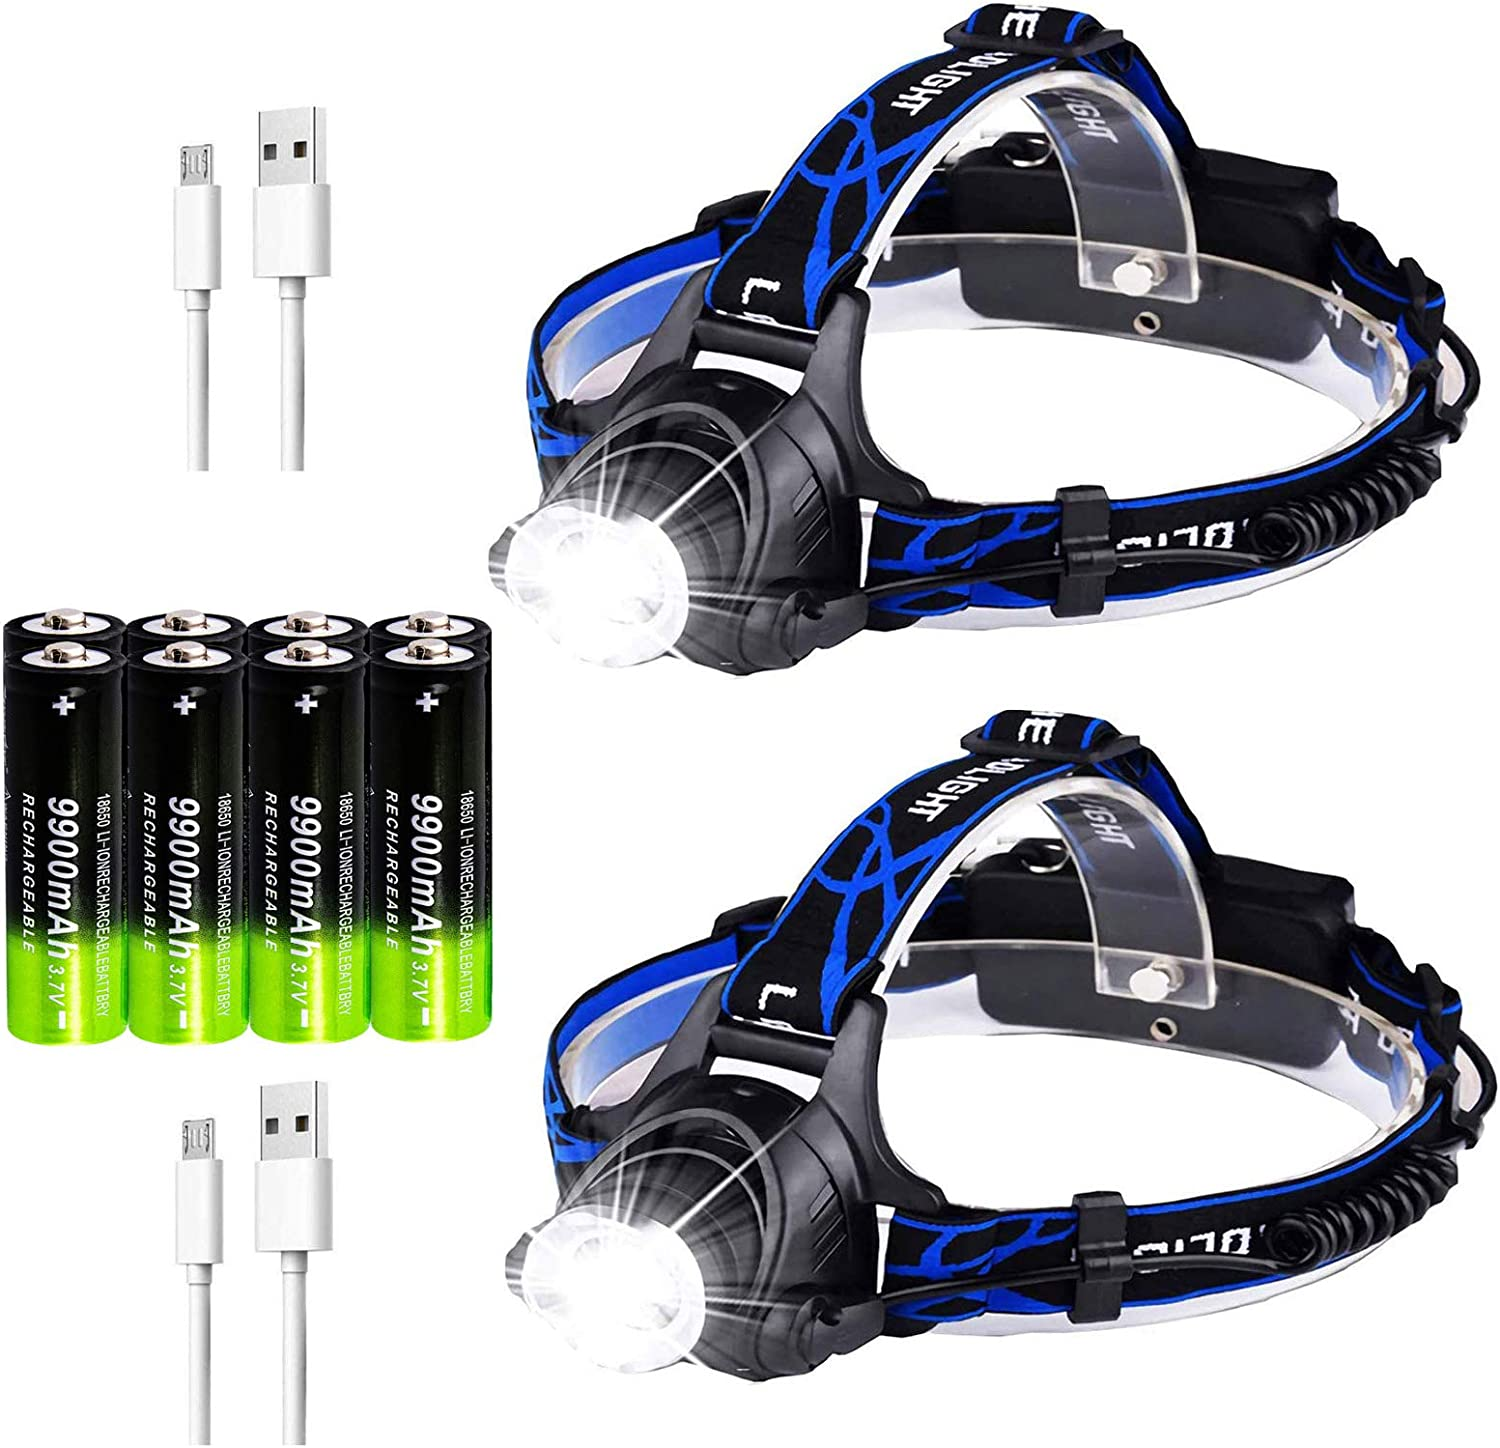 2Pack USB Directly managed store Rechargeable Headlamps with 18650 Financial sales sale Flashlight Headlamp